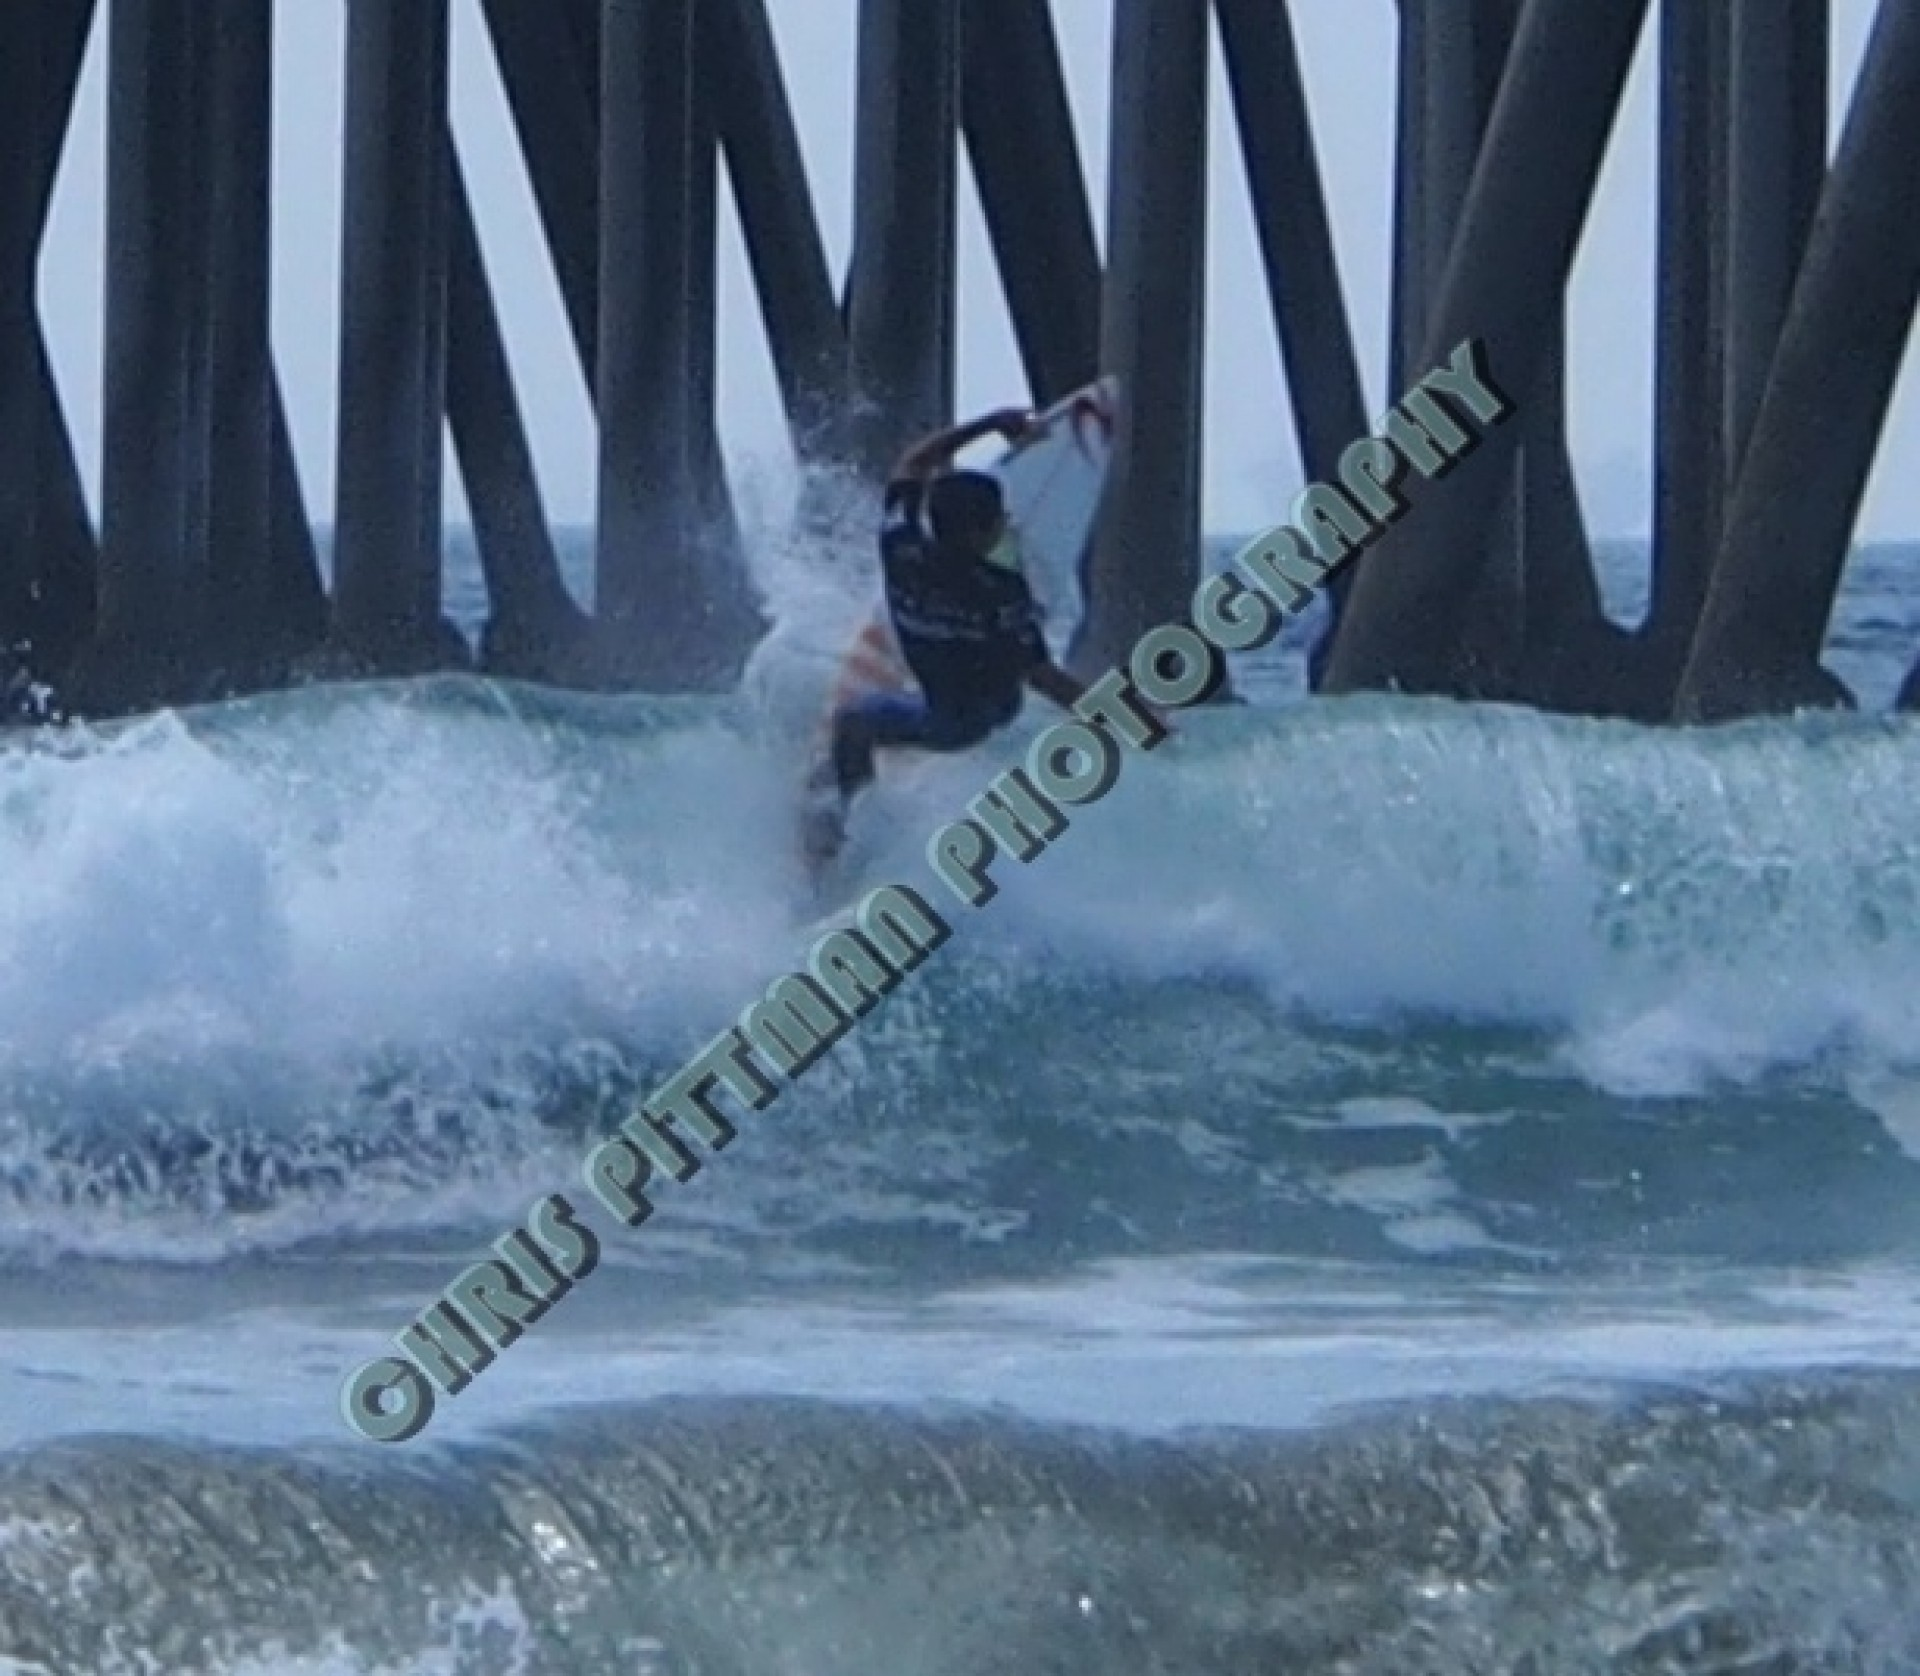 Riptide31's photo of Huntington Pier